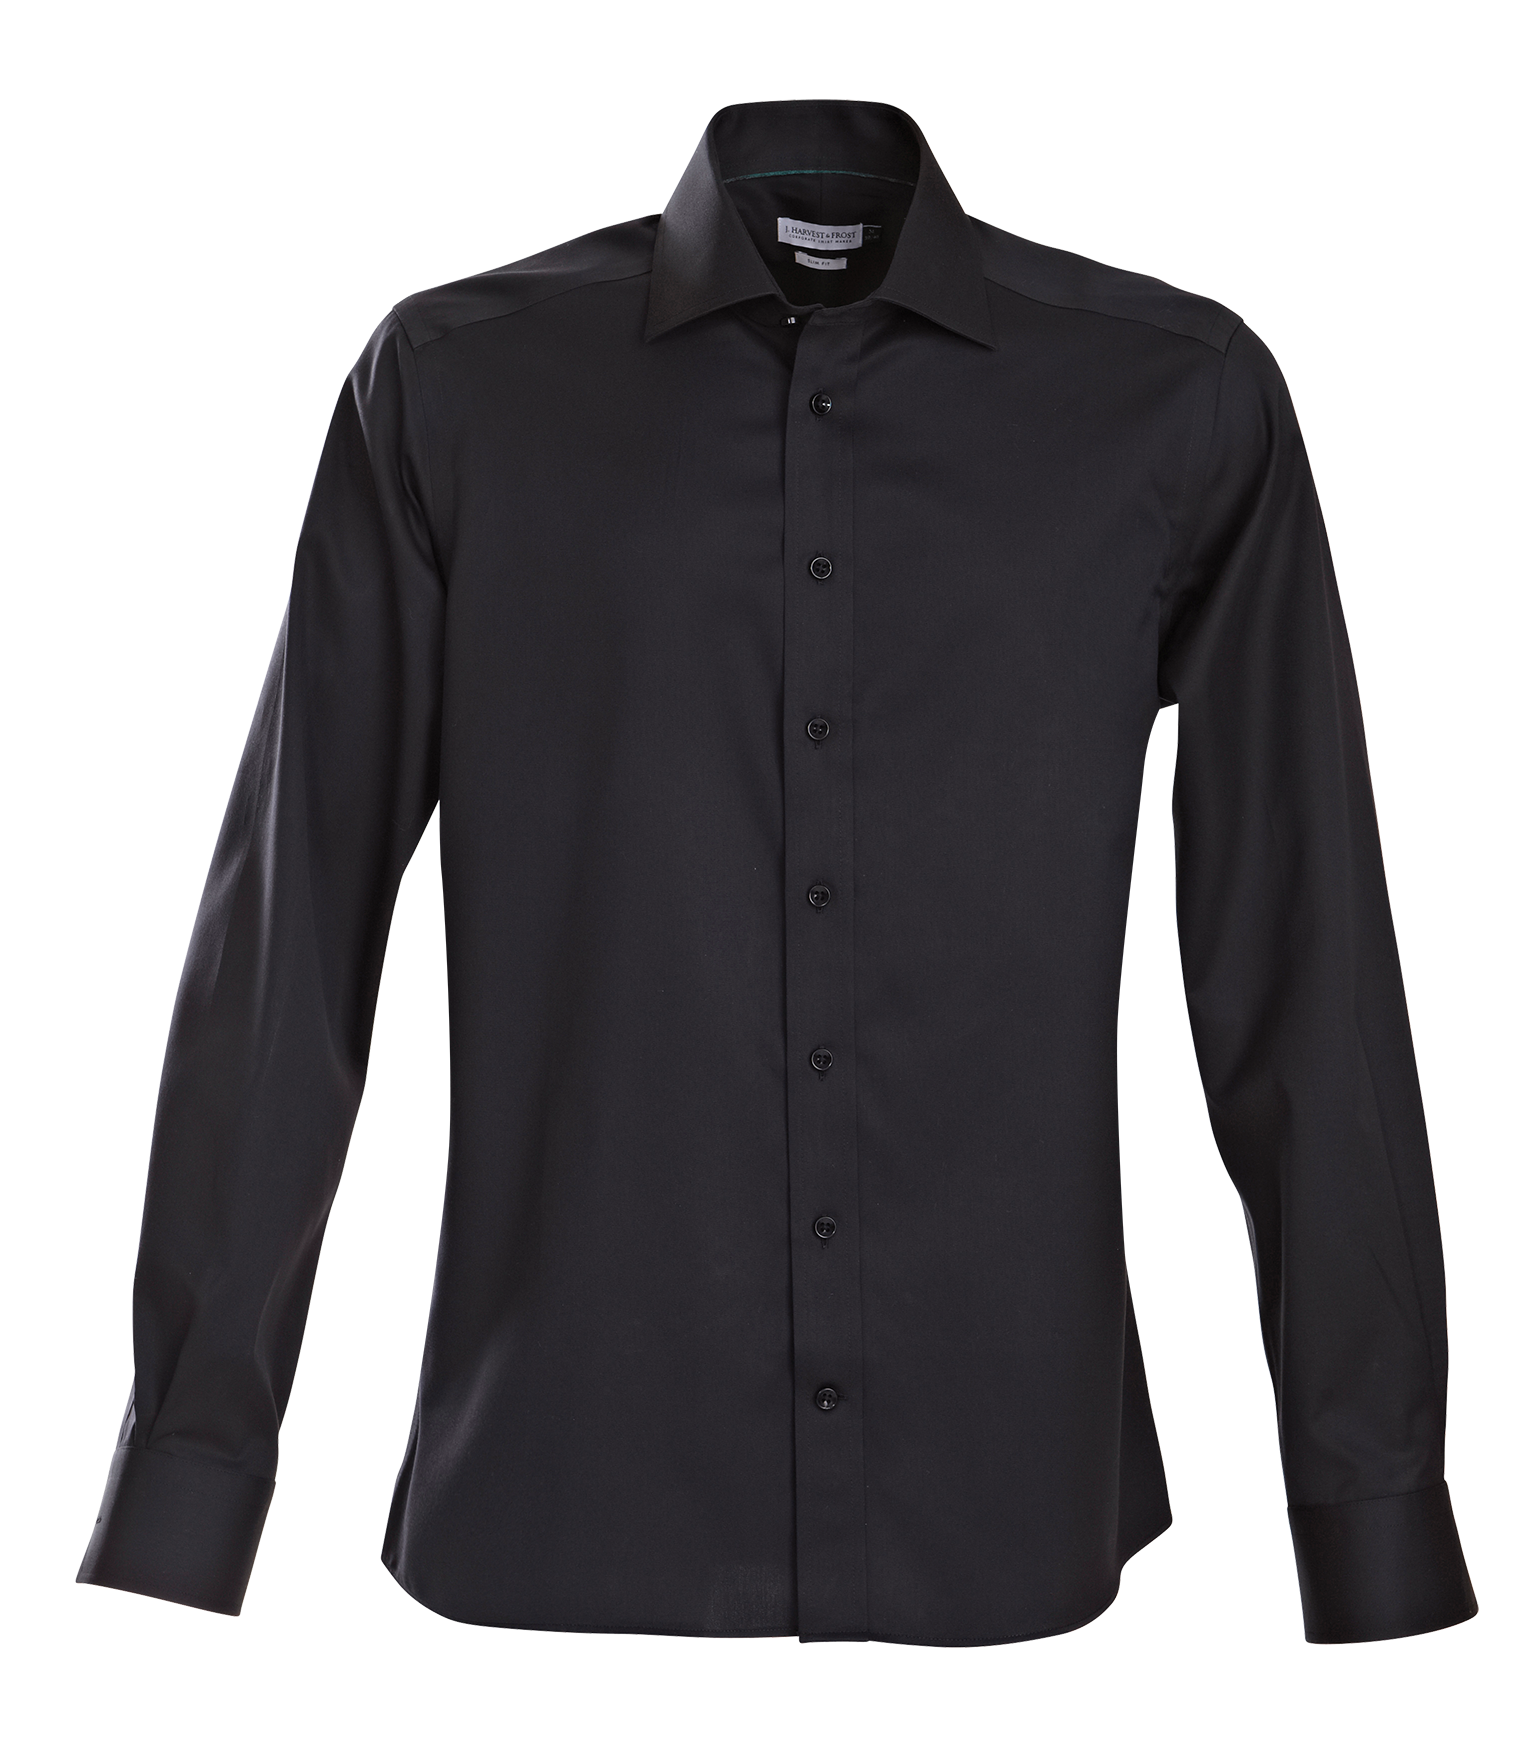 J.H & Frost Green Bow 01 Mens Shirt in Black